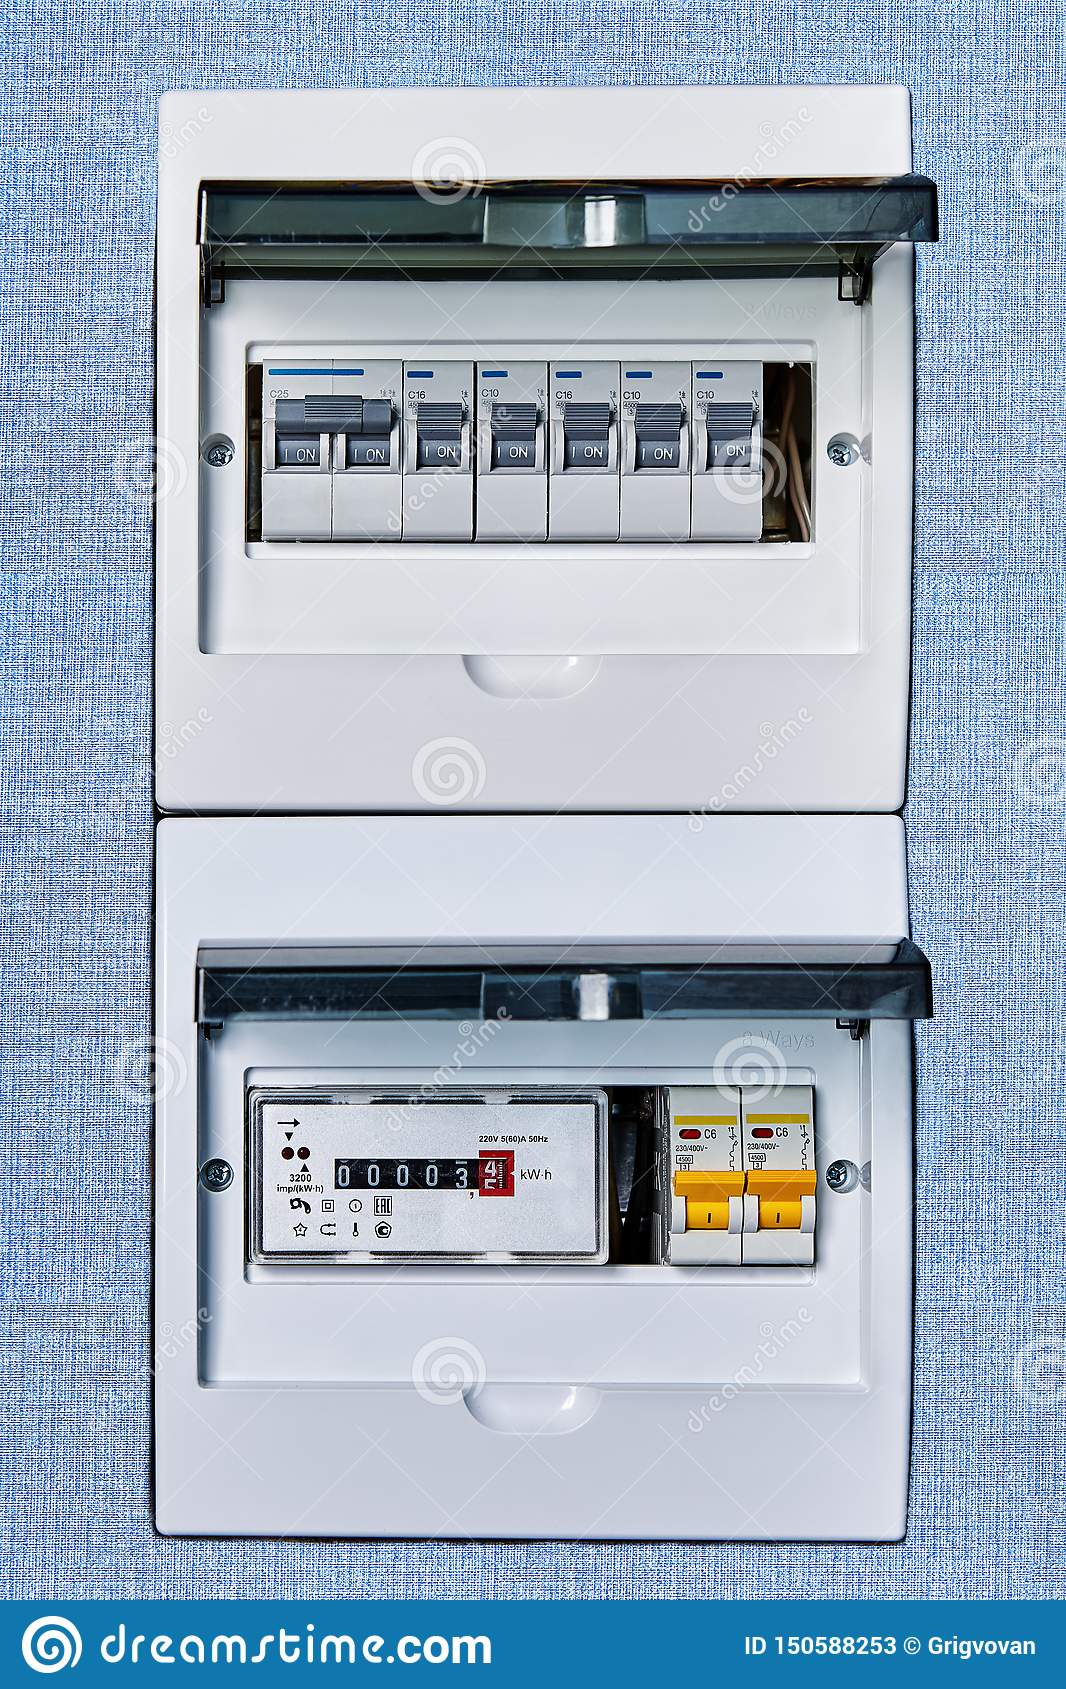 fuse box controls electricity in home stock image - image of measurement,  cabinet: 150588253  dreamstime.com